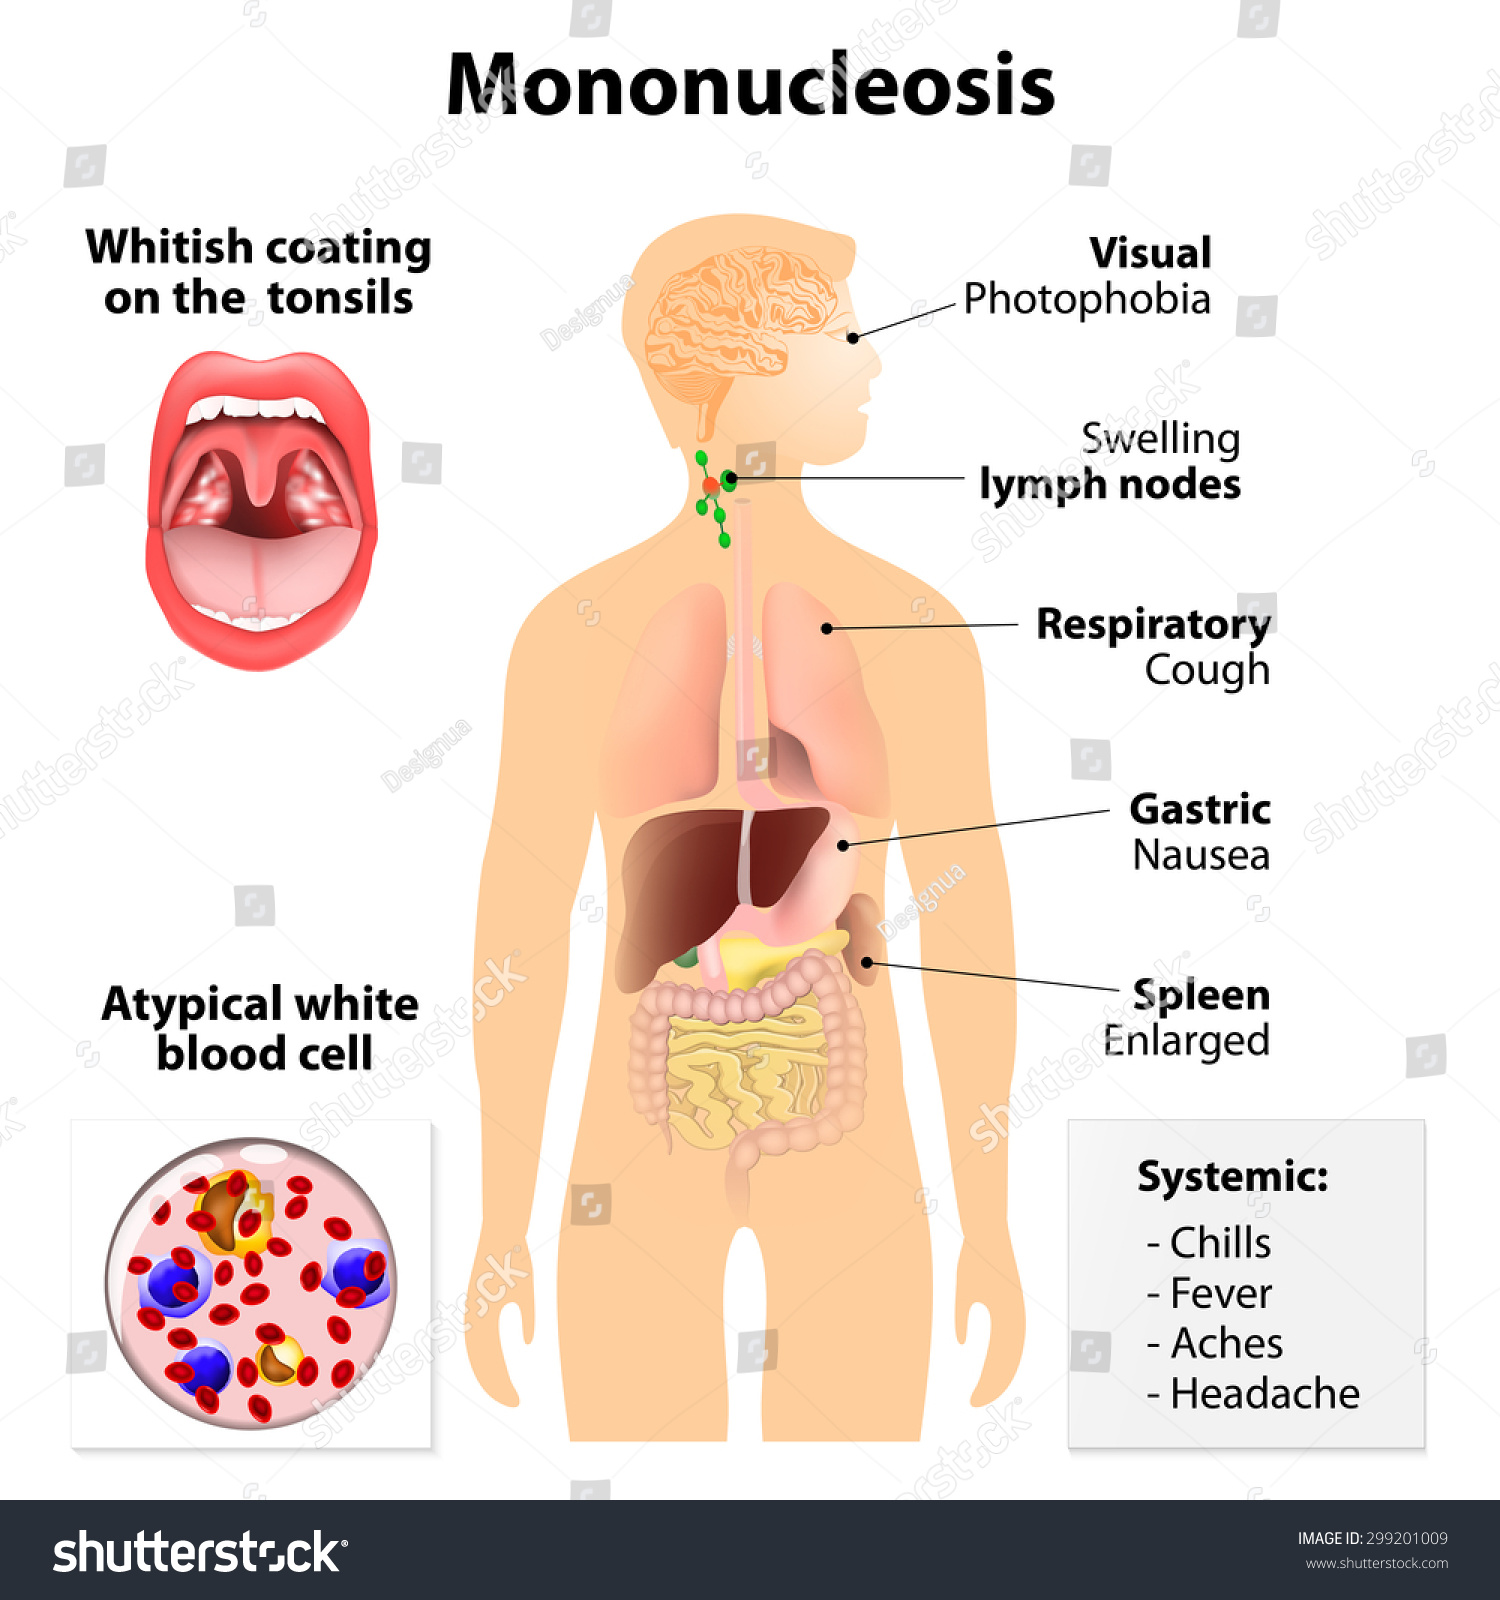 Infectious mononucleosis in adults